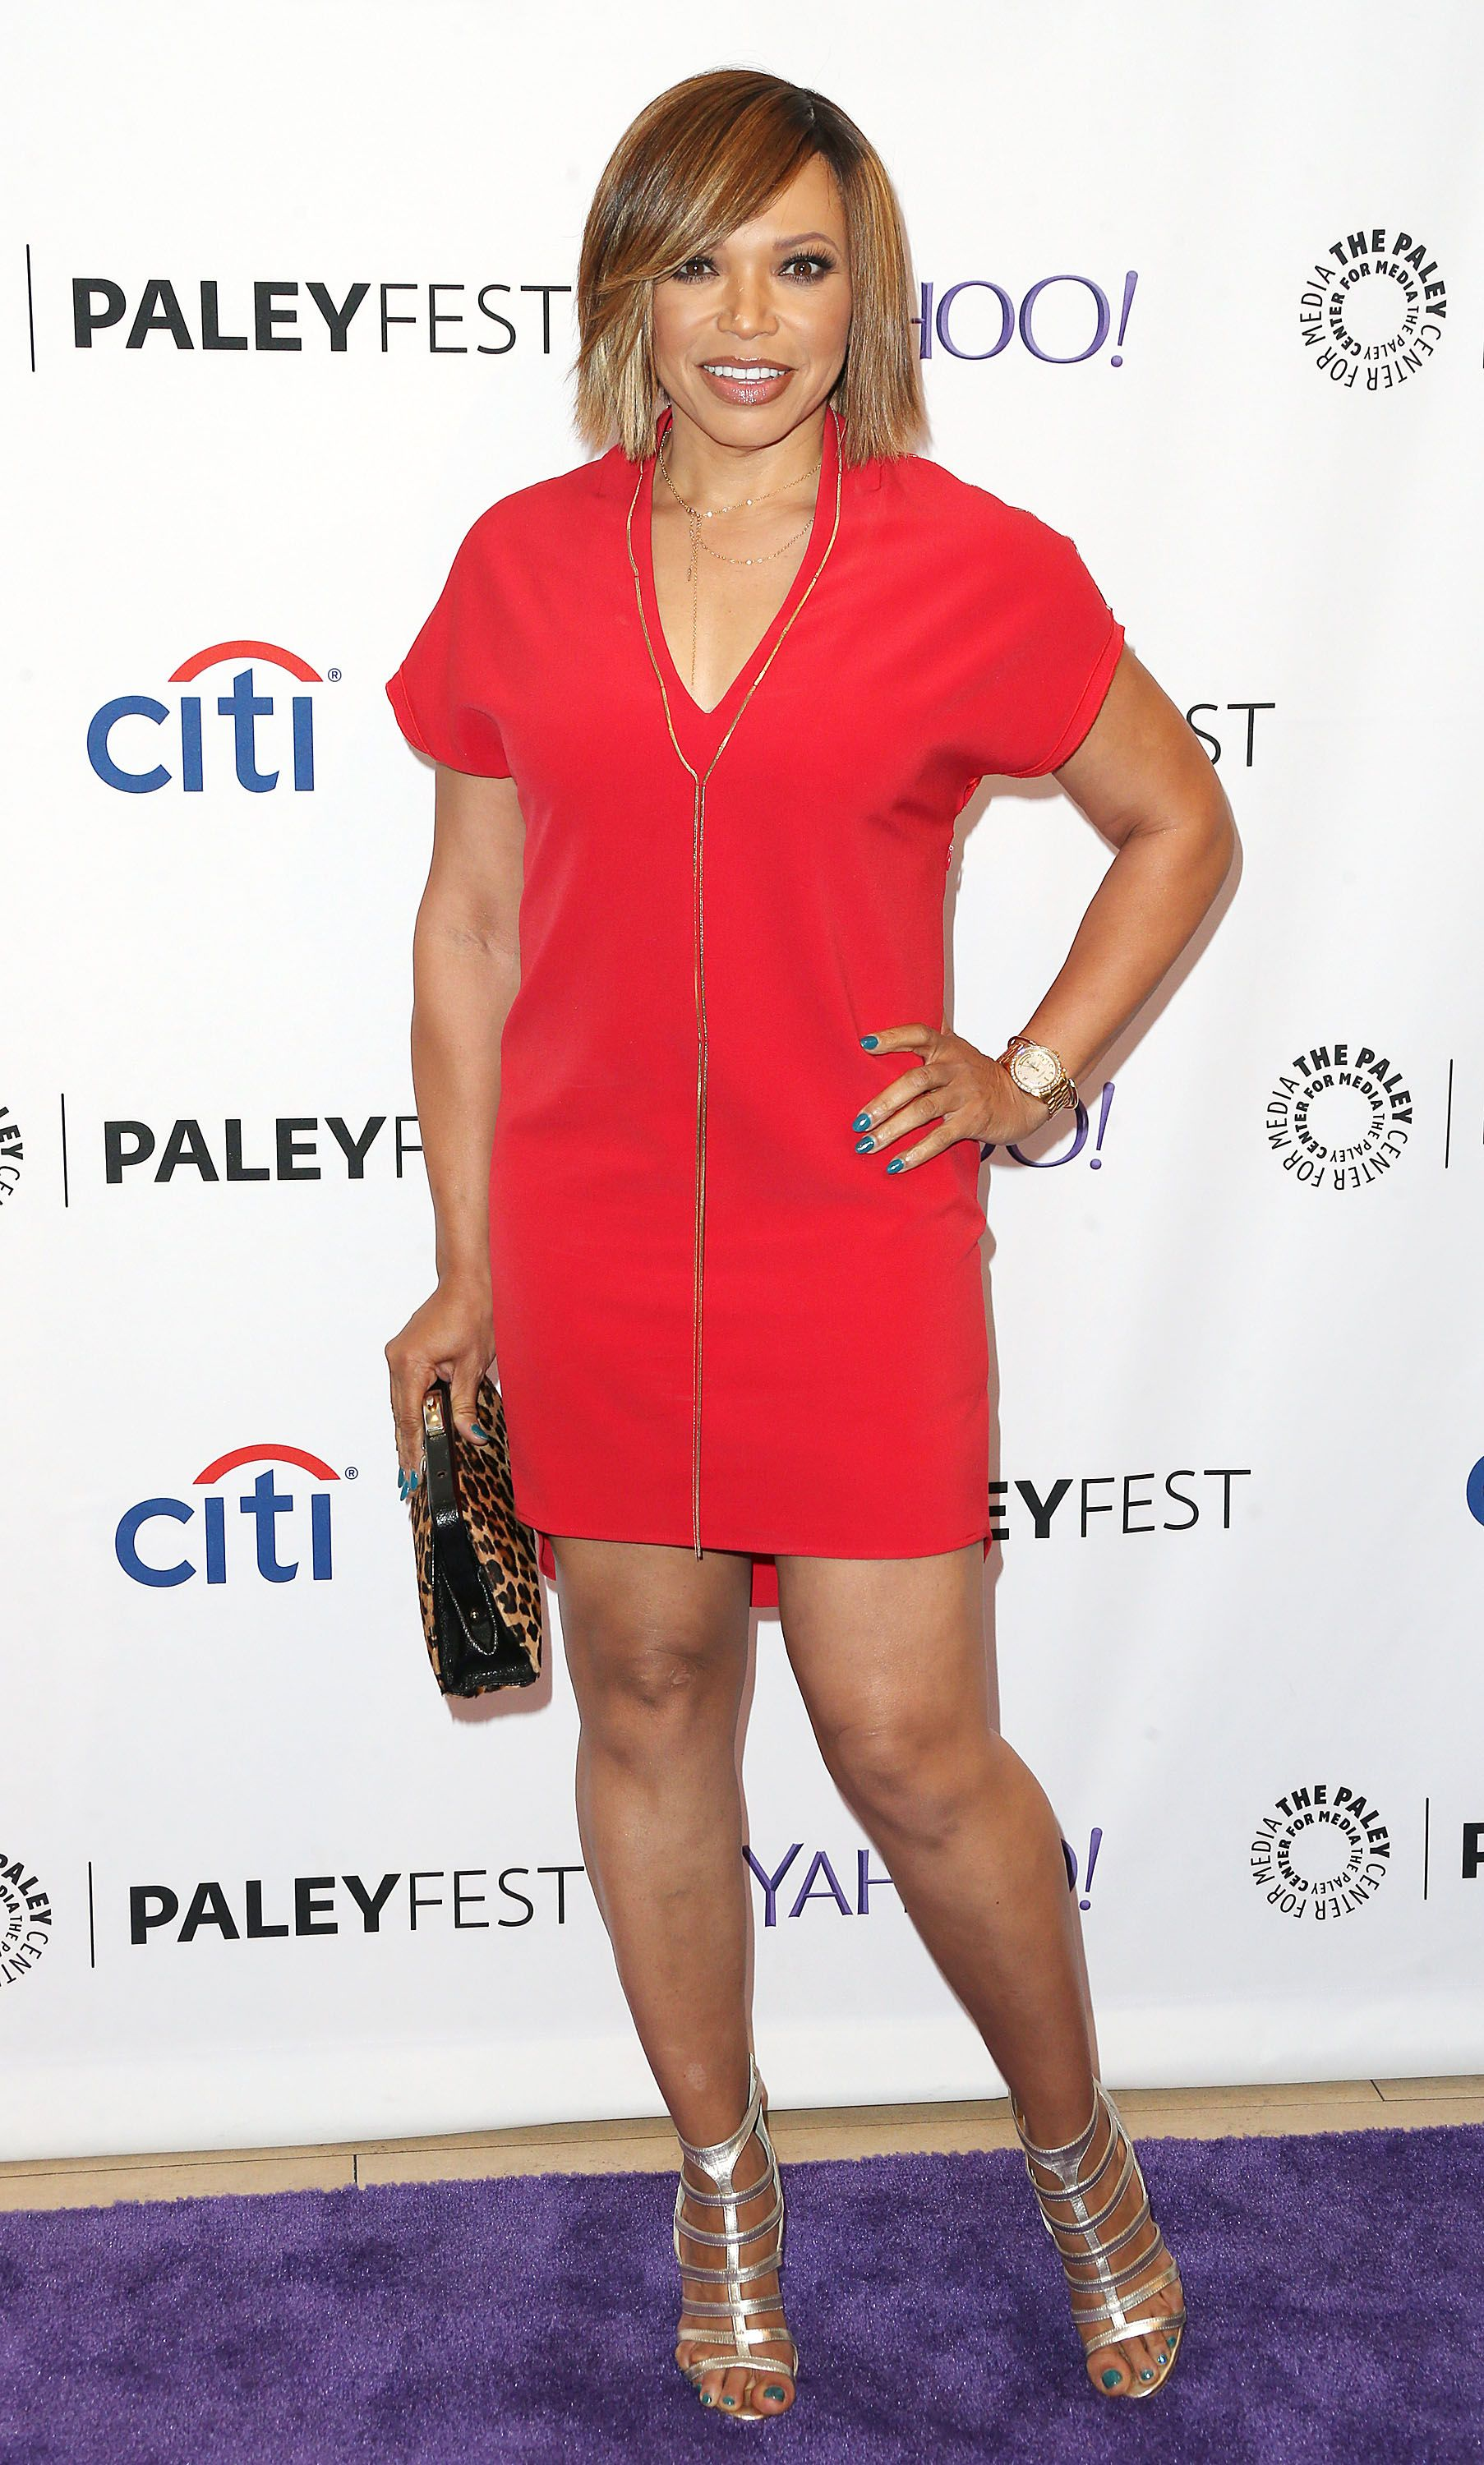 Tisha Campbell-Martin during The Paley Center for Media's PaleyFest 2015 Fall TV Preview for ABC at The Paley Center for Media on September 12, 2015 in Beverly Hills, California. | Source: Getty Images